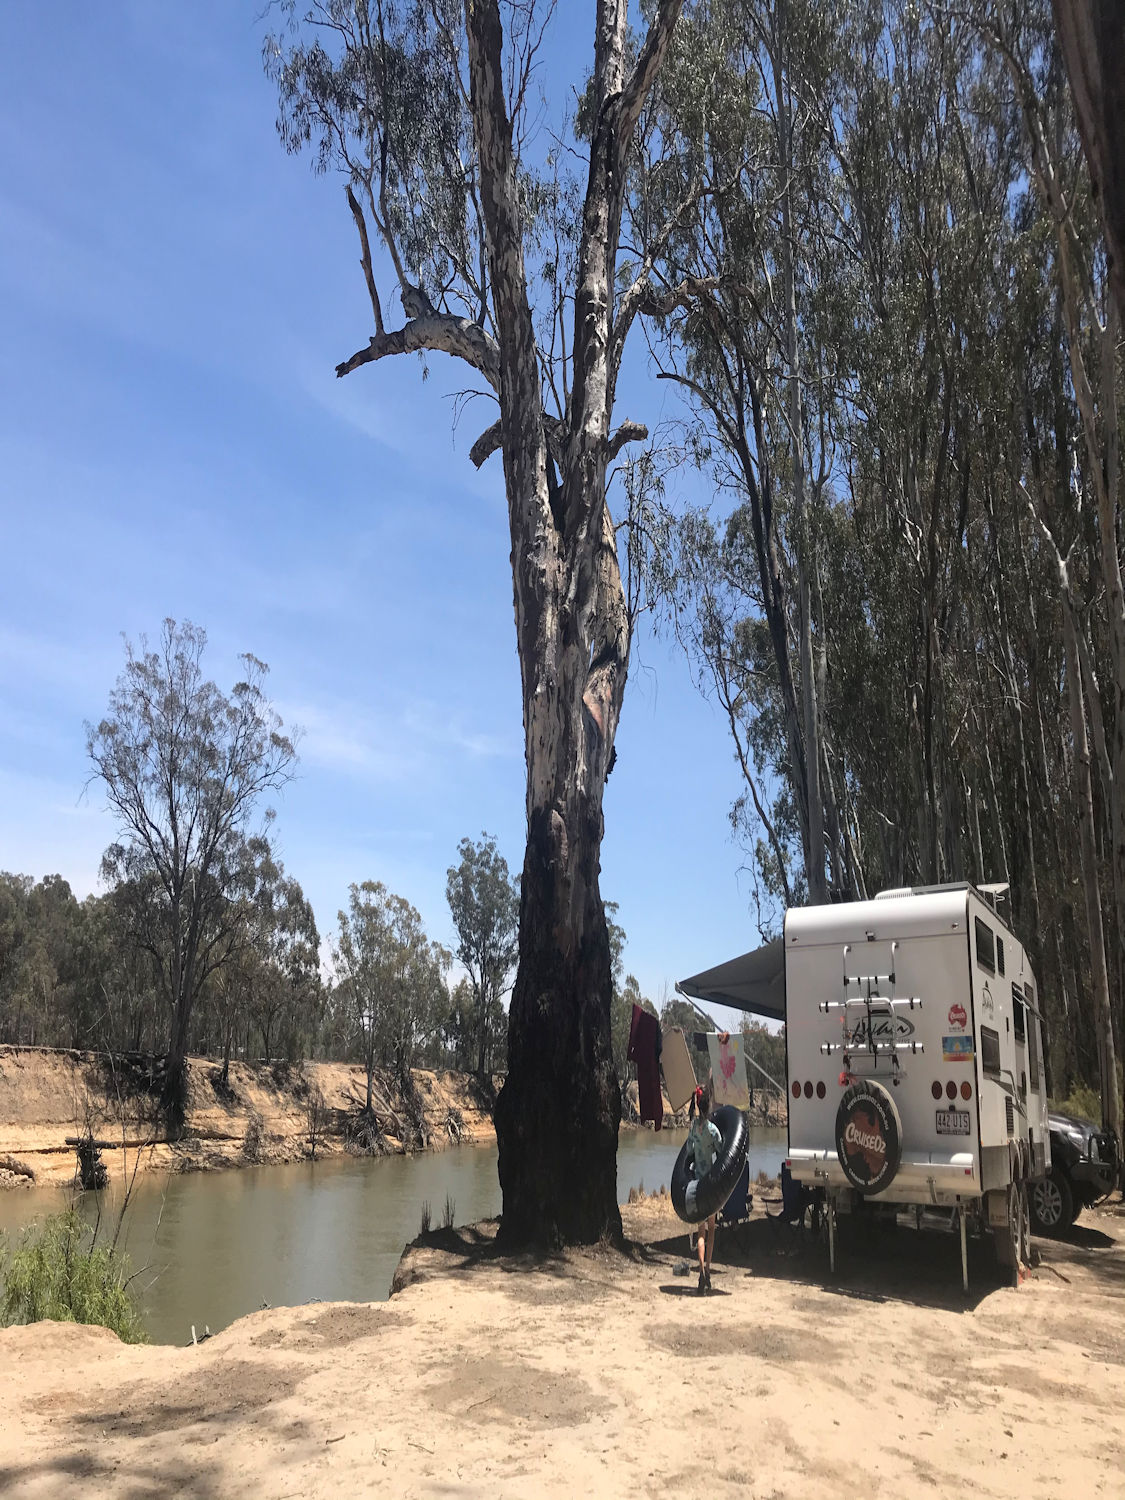 QLD TO VICTORIA – Free camp luck and running out of fuel.